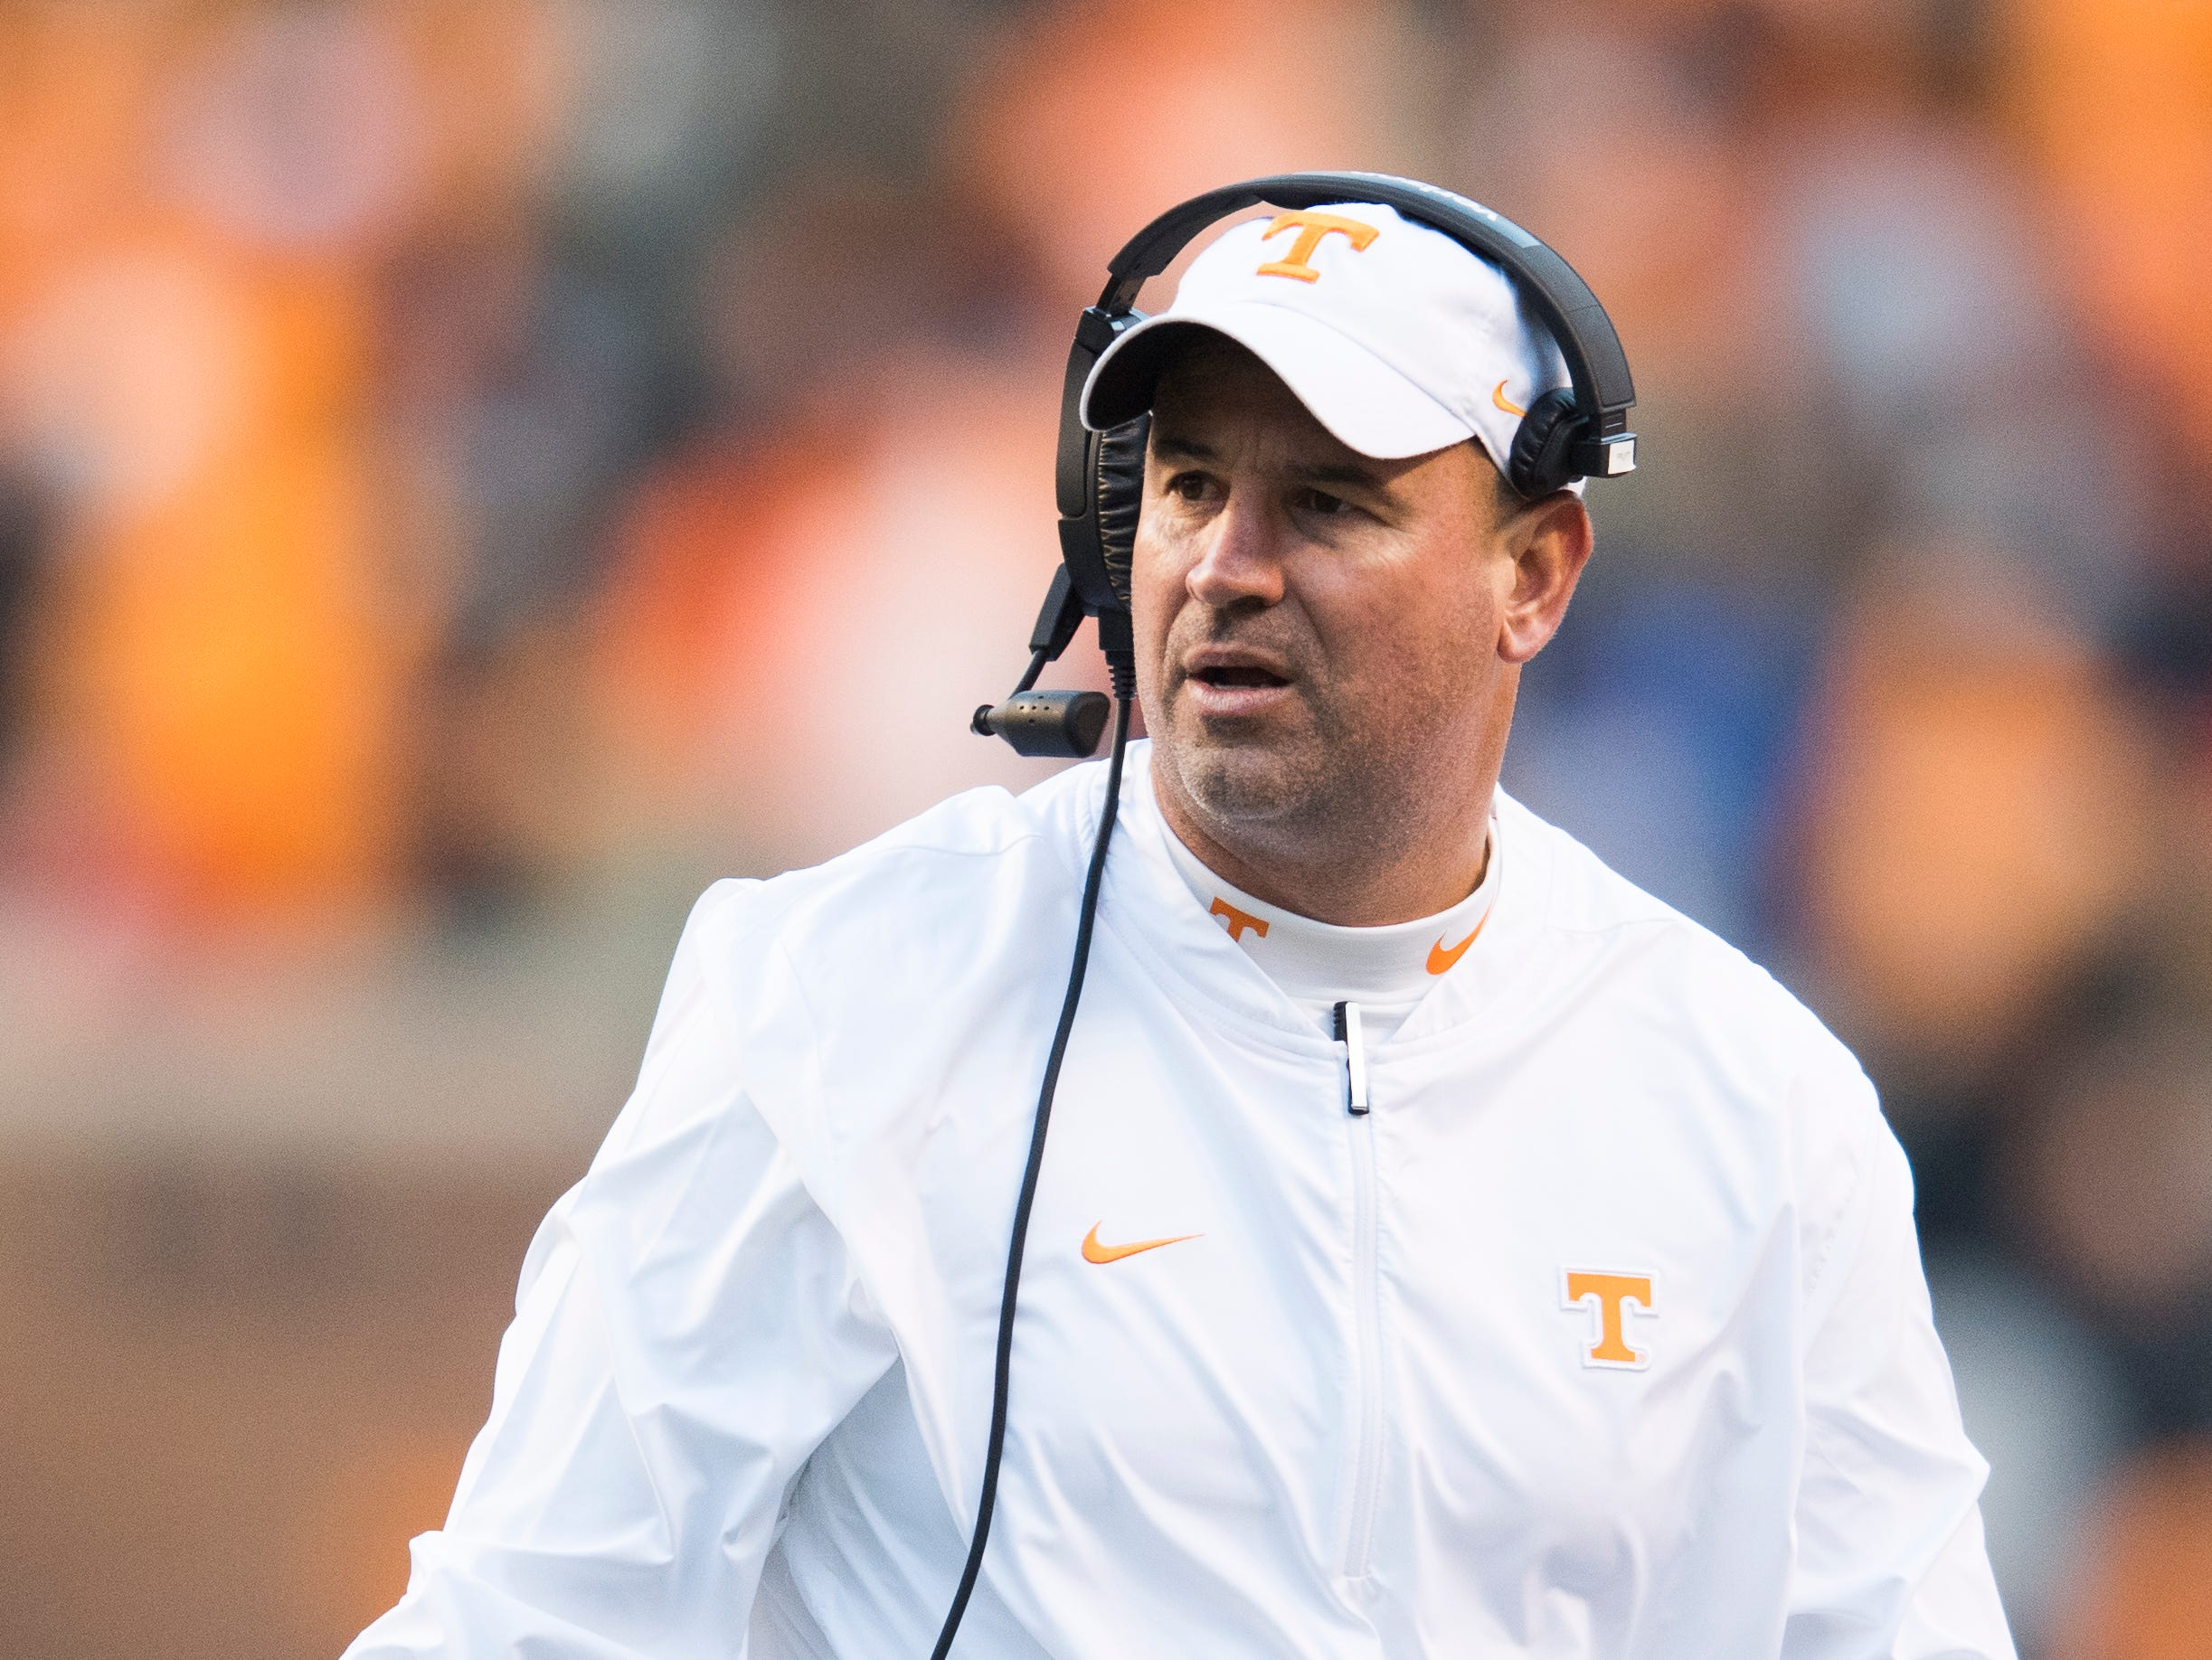 Tennessee Head Coach Jeremy Pruitt walks on the sidelines during a game between Tennessee and Kentucky at Neyland Stadium in Knoxville, Tennessee on Saturday, November 10, 2018.